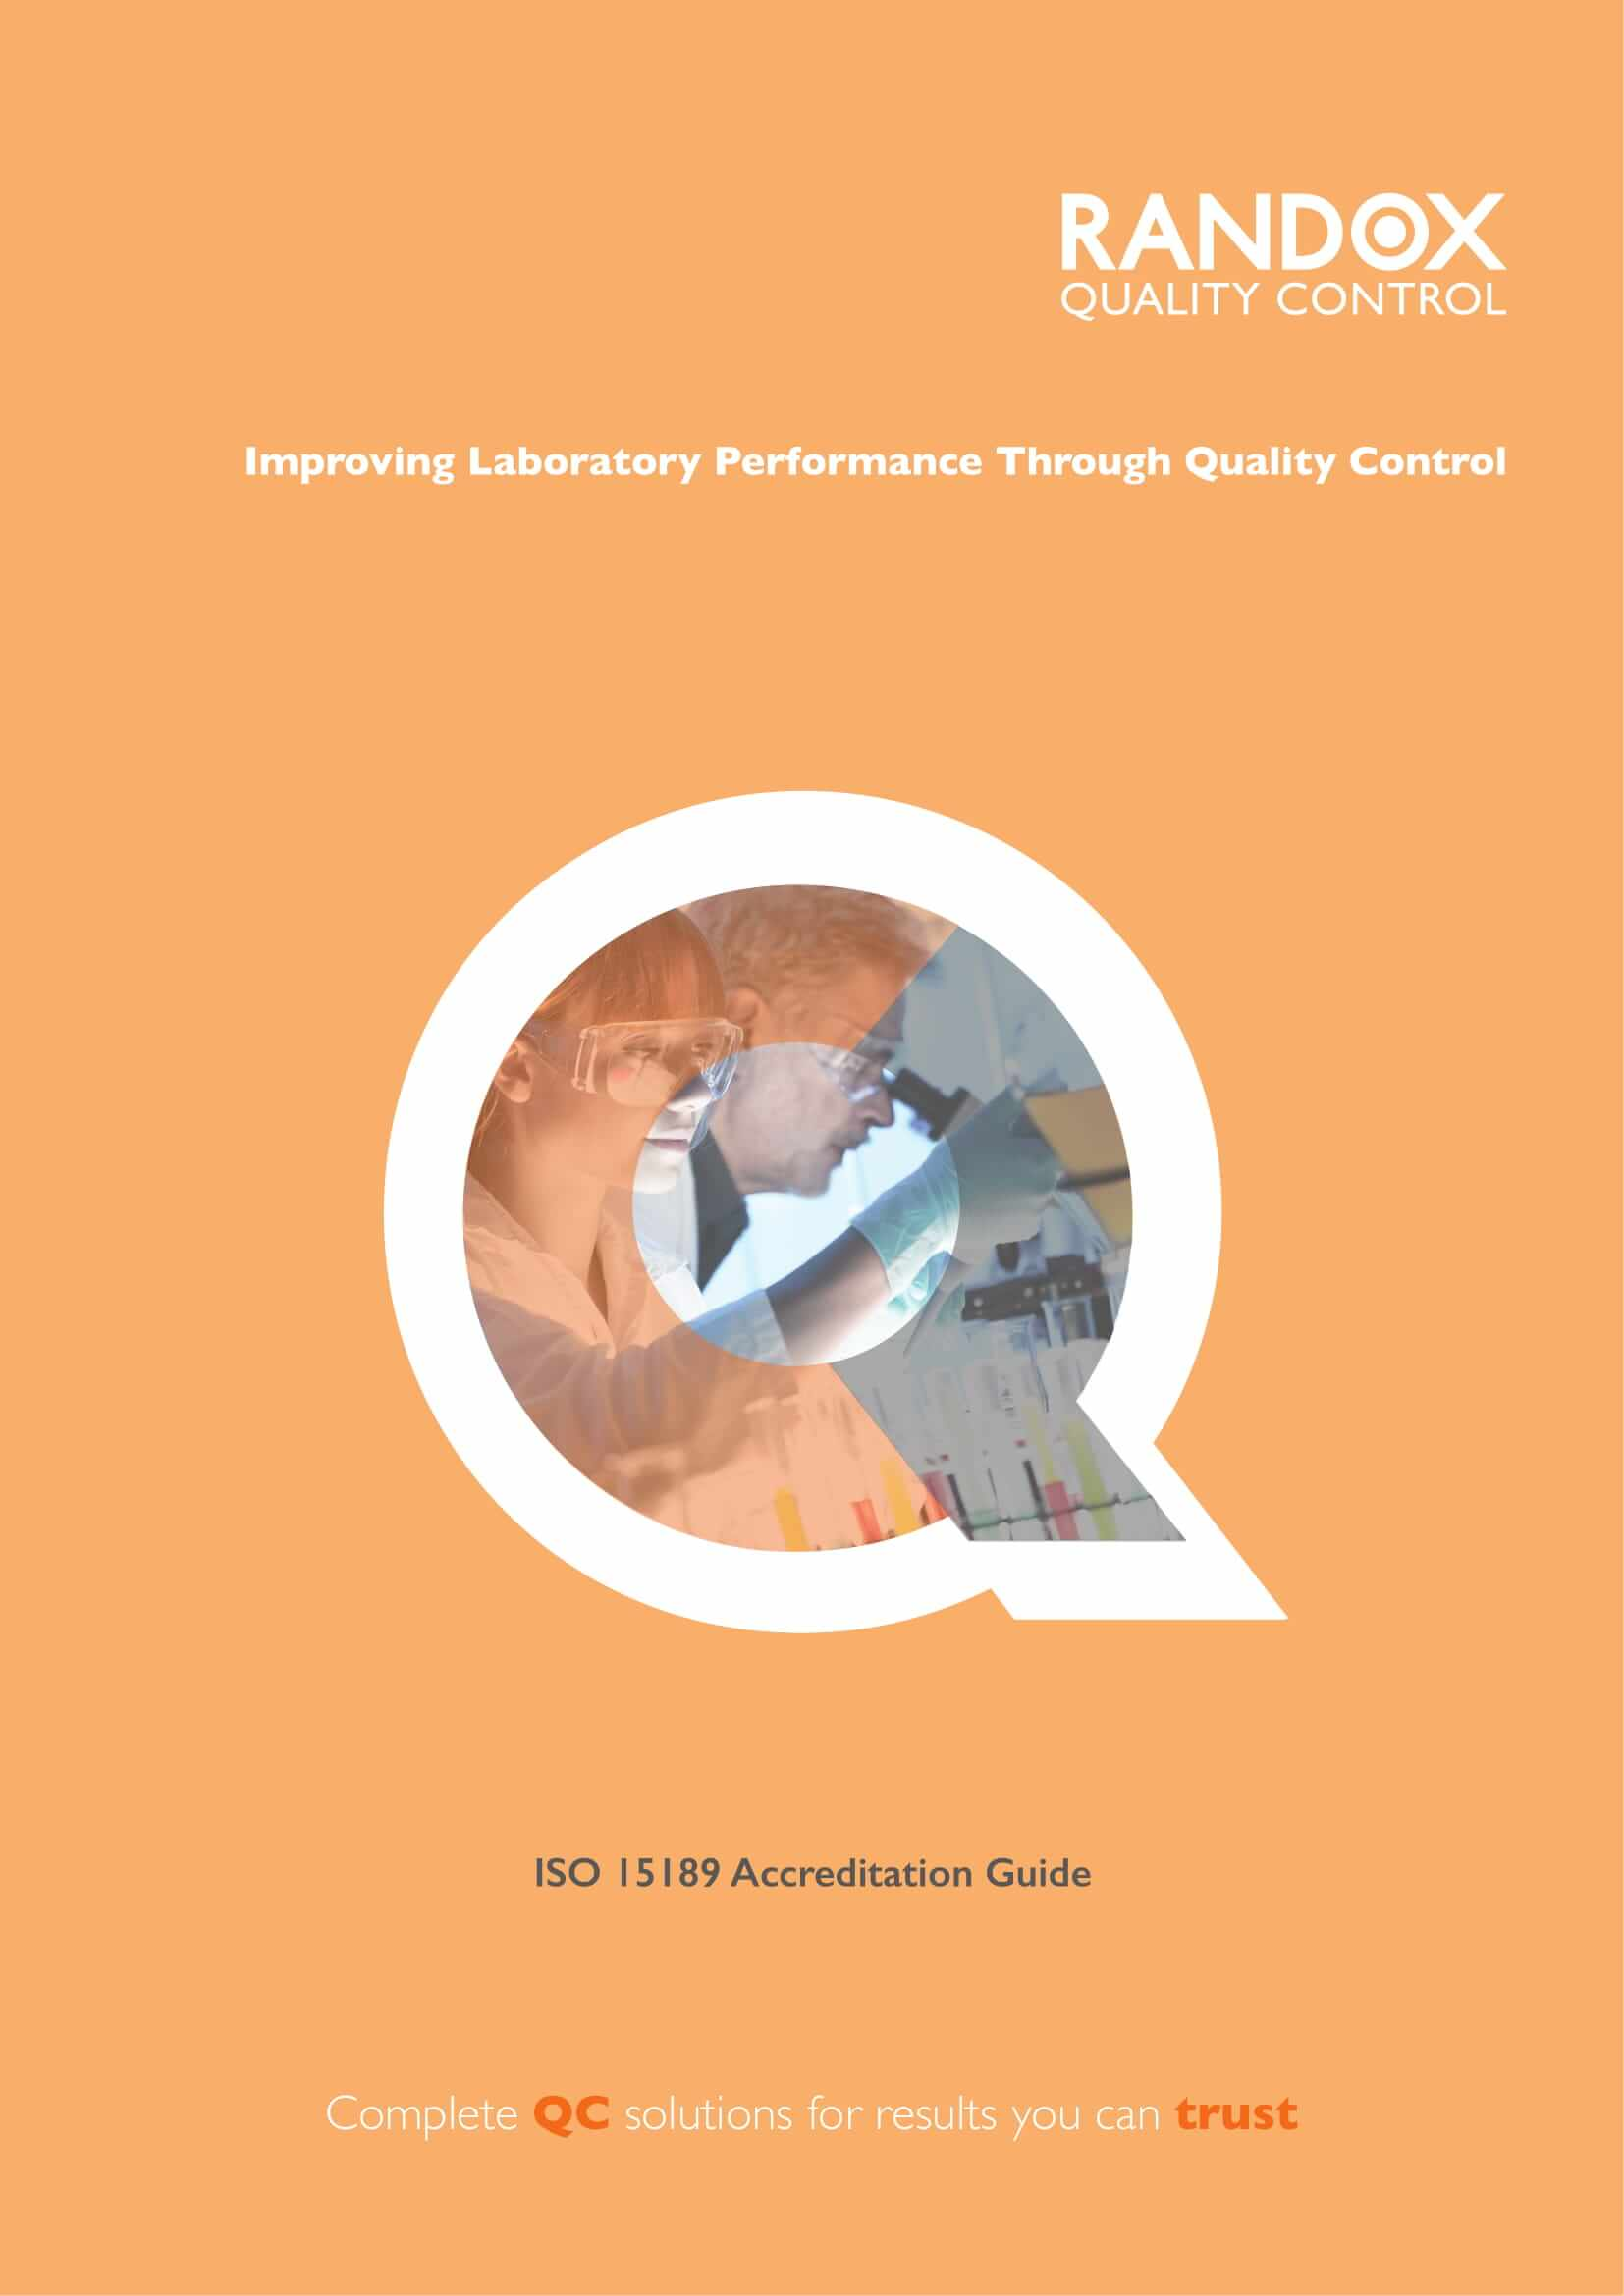 Gaining ISO 15189 Accreditation - Download